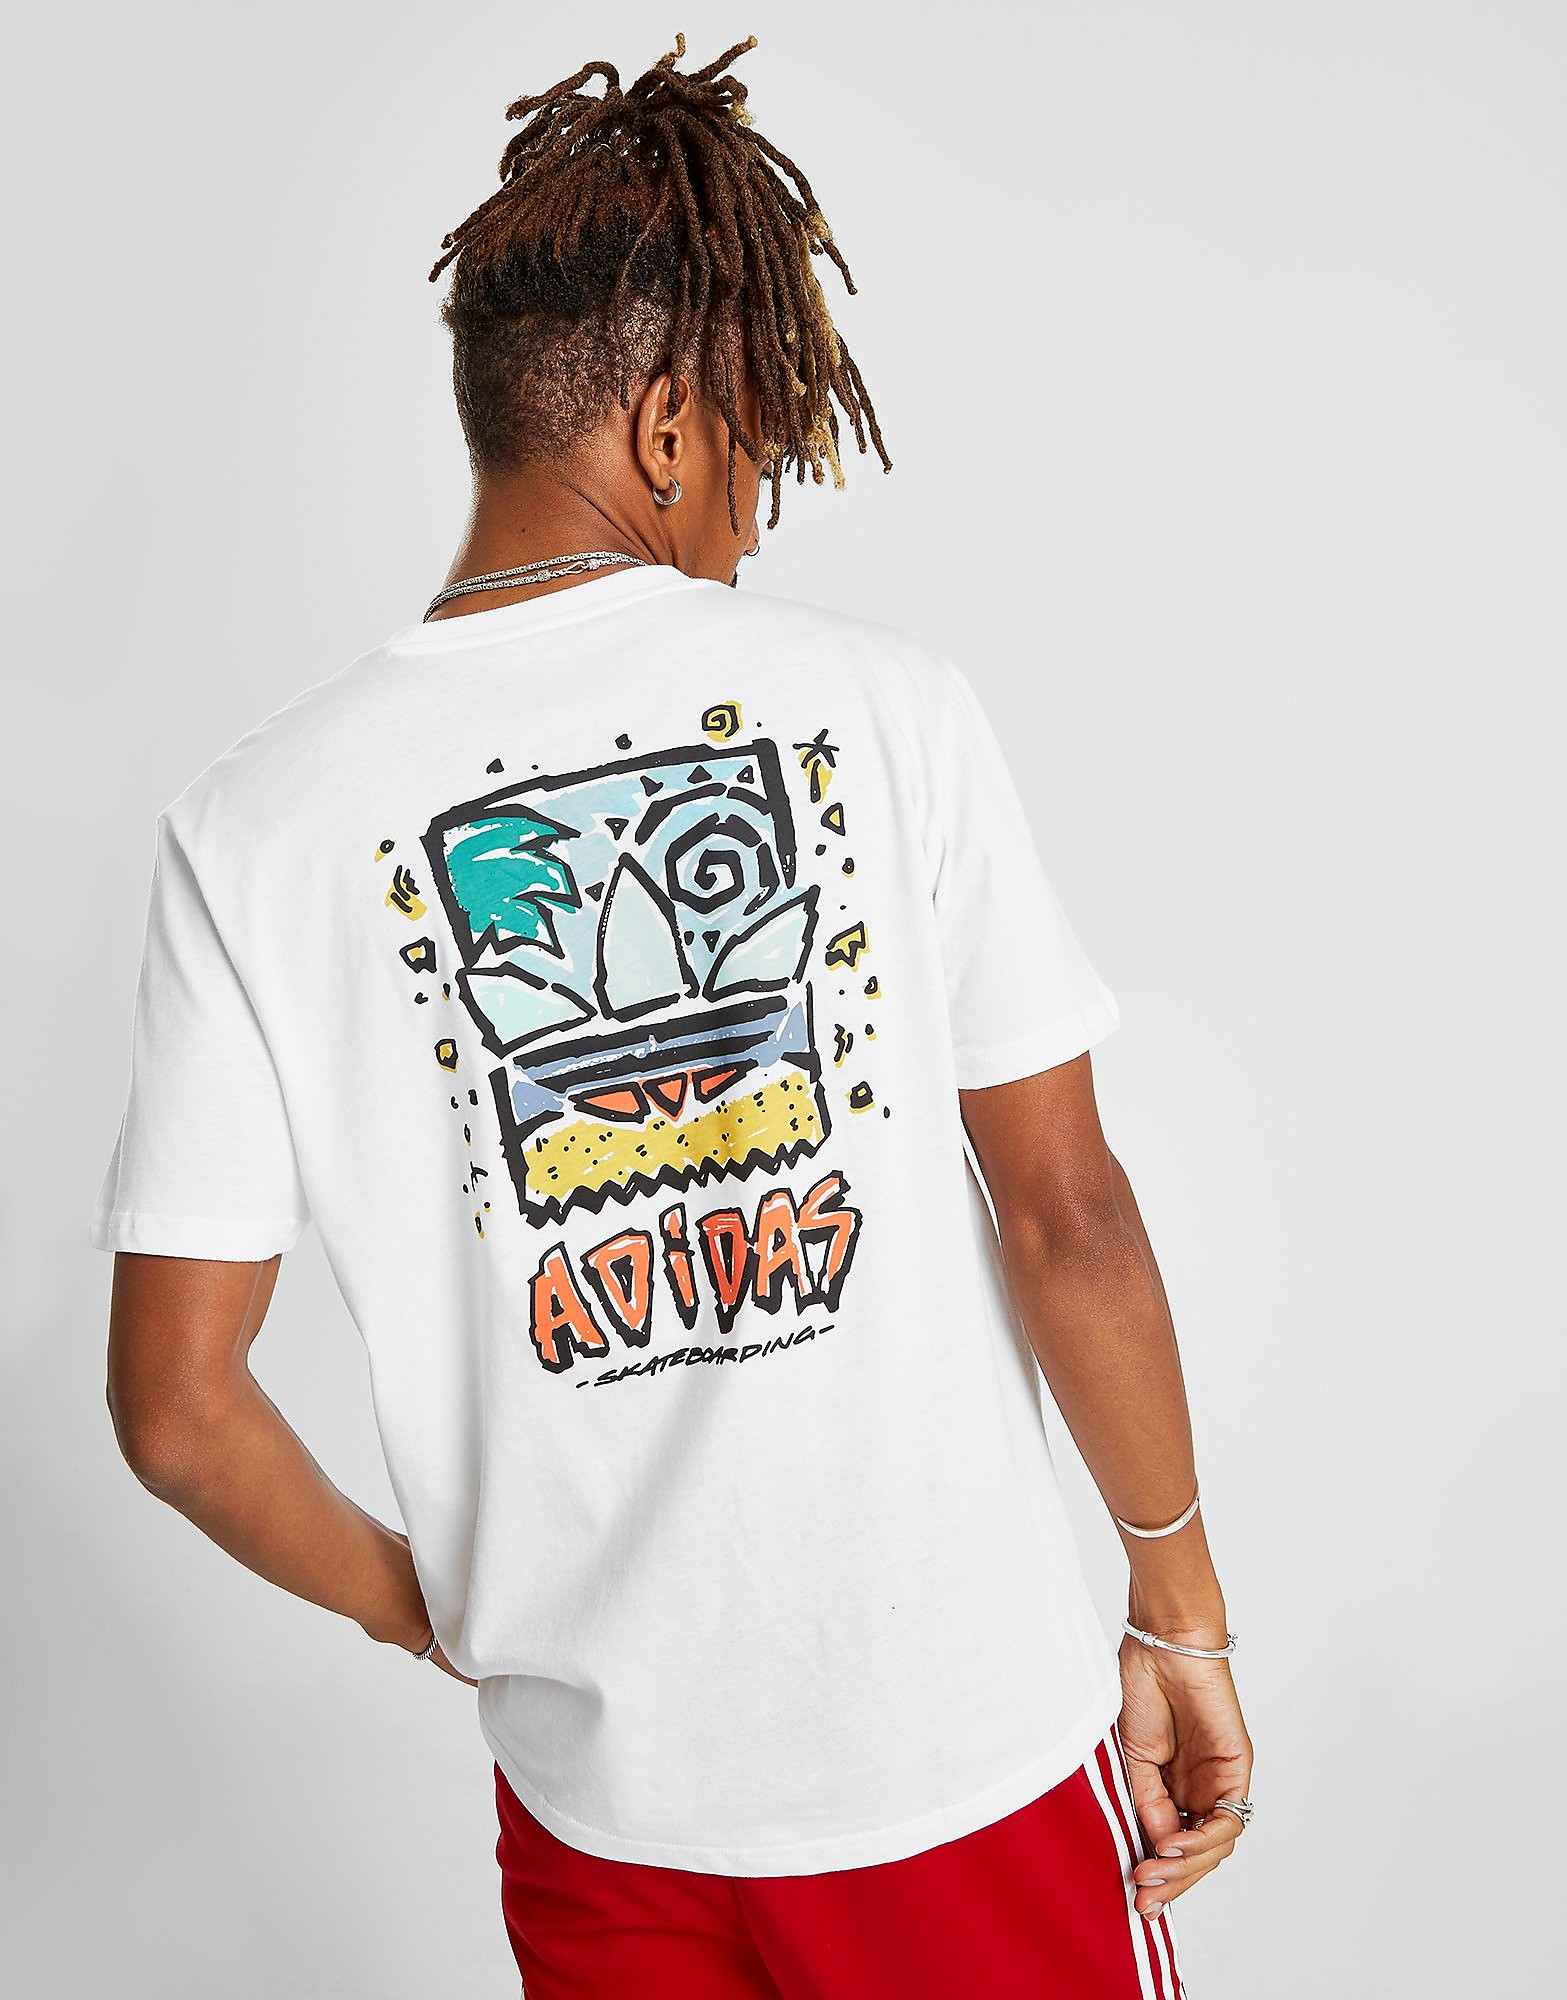 adidas Originals Skateboarding Roanoke T-Shirt Heren - Wit - Heren